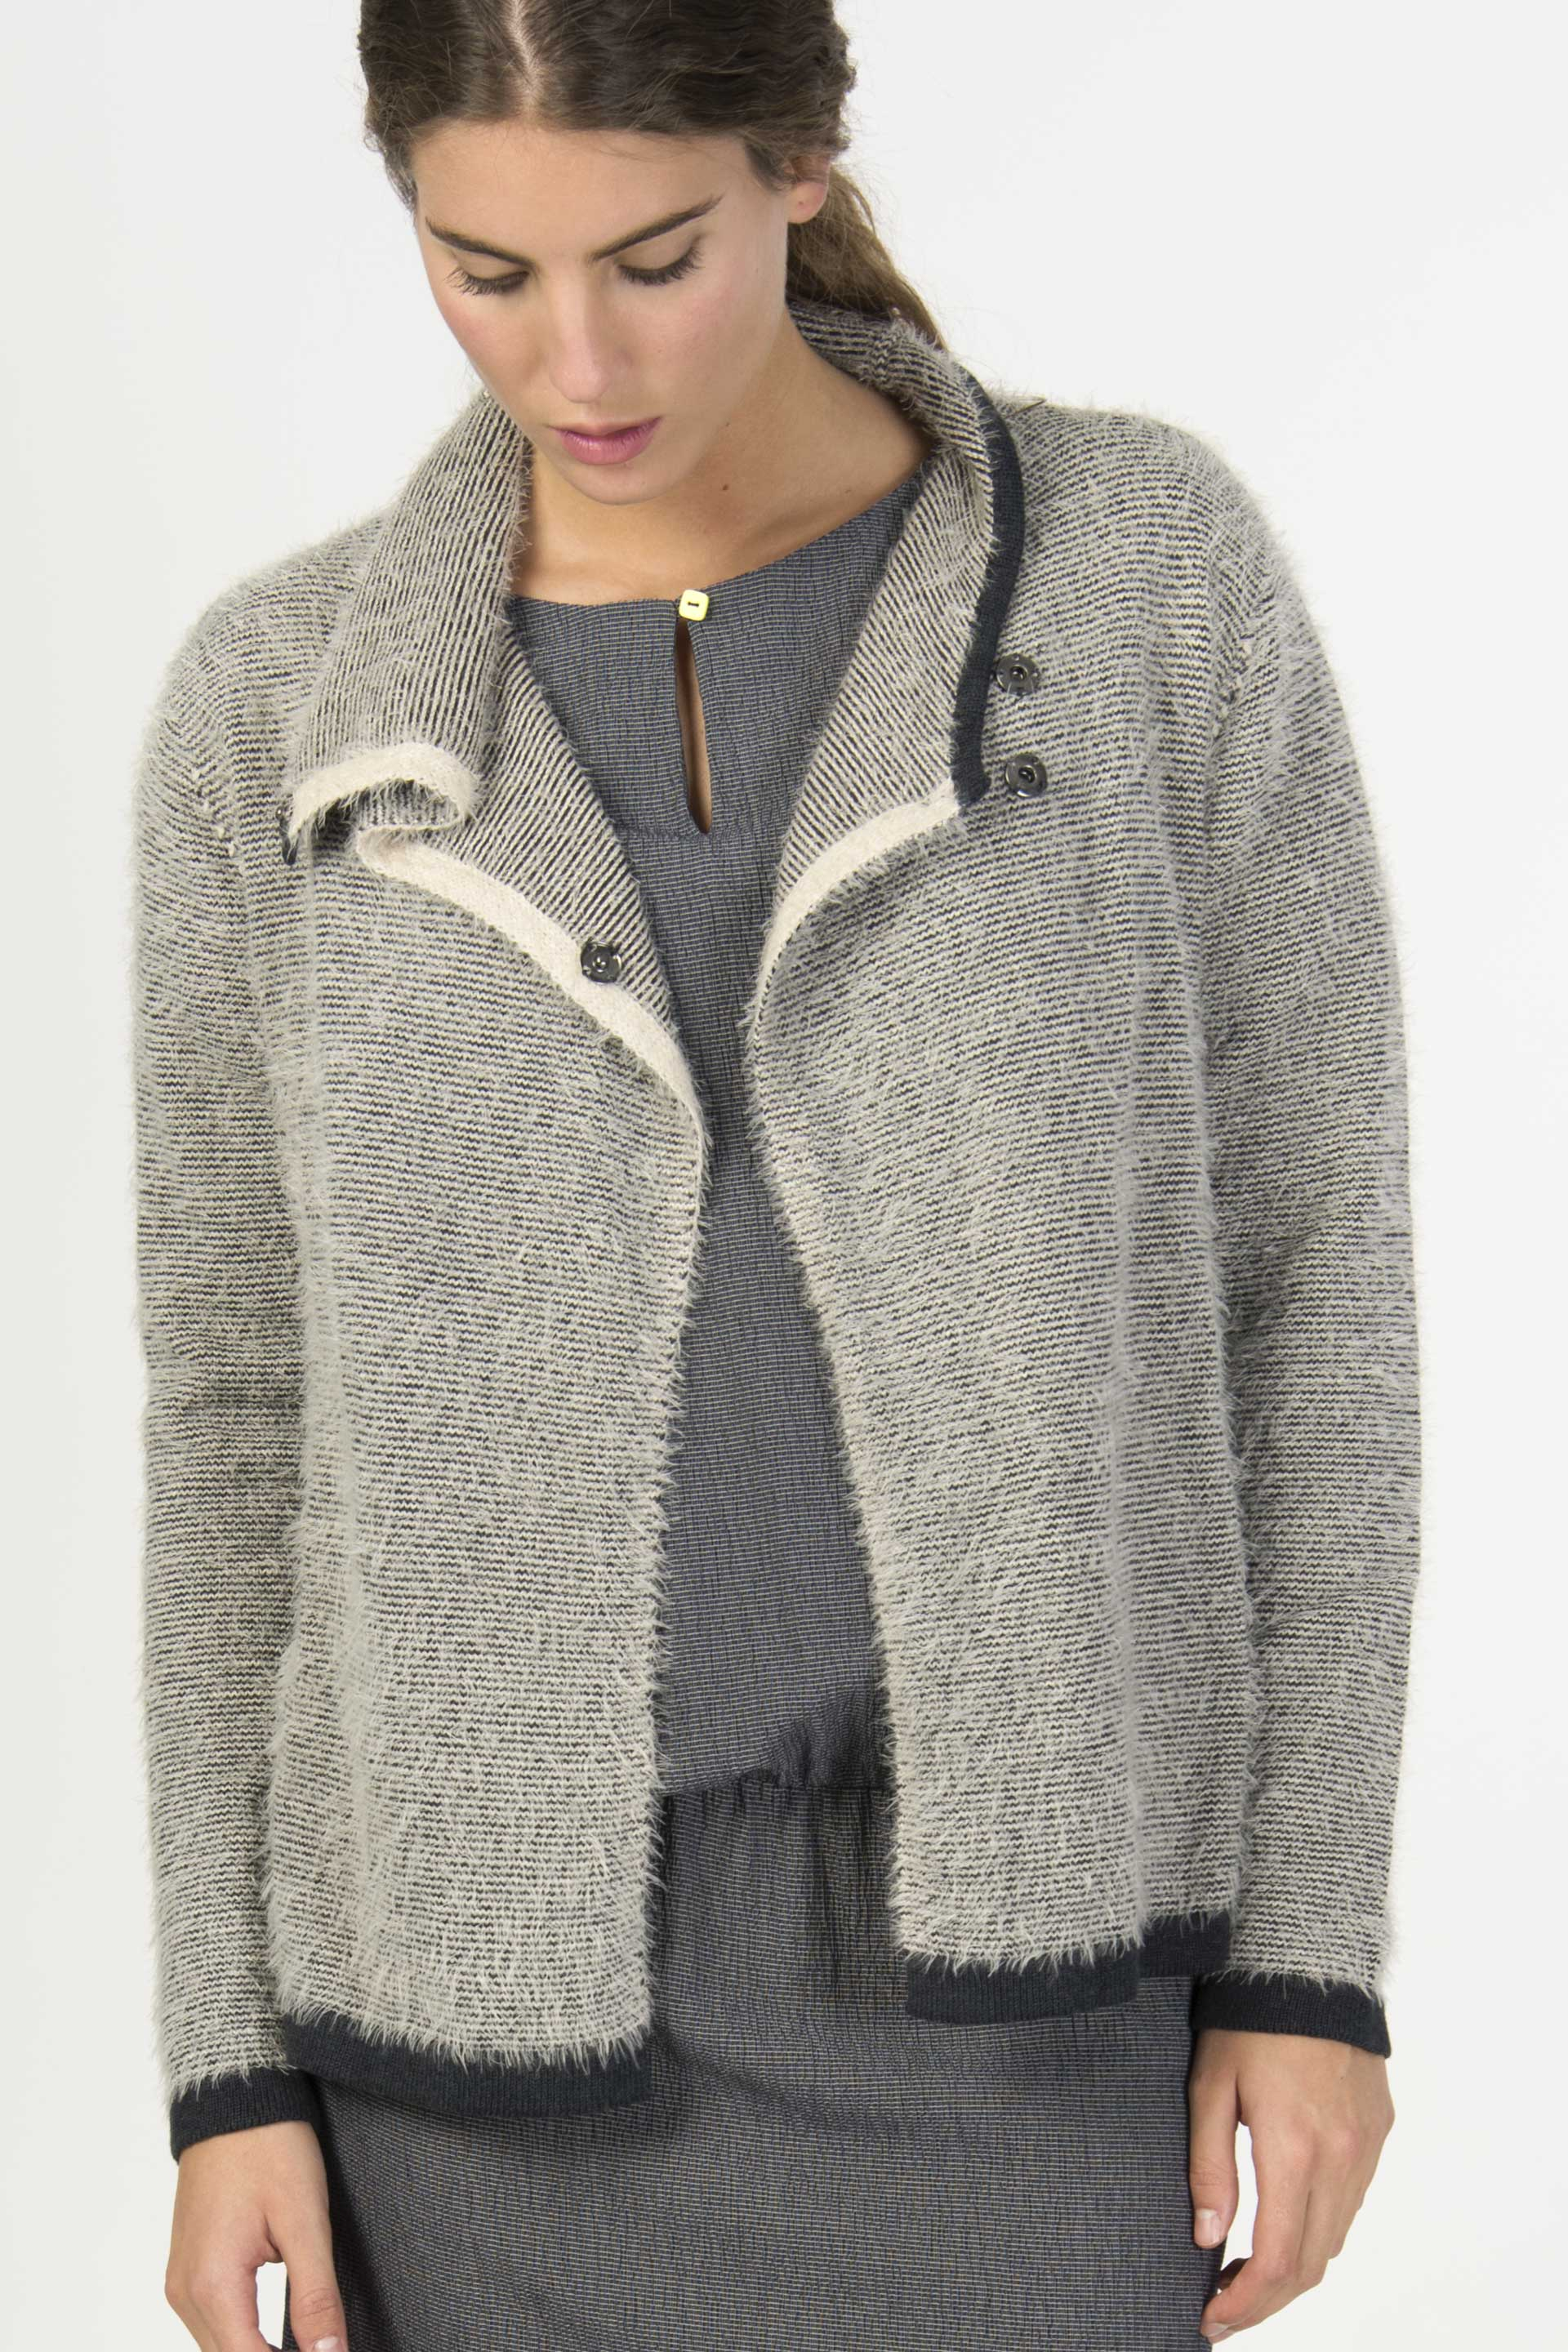 LEIRE Sweater